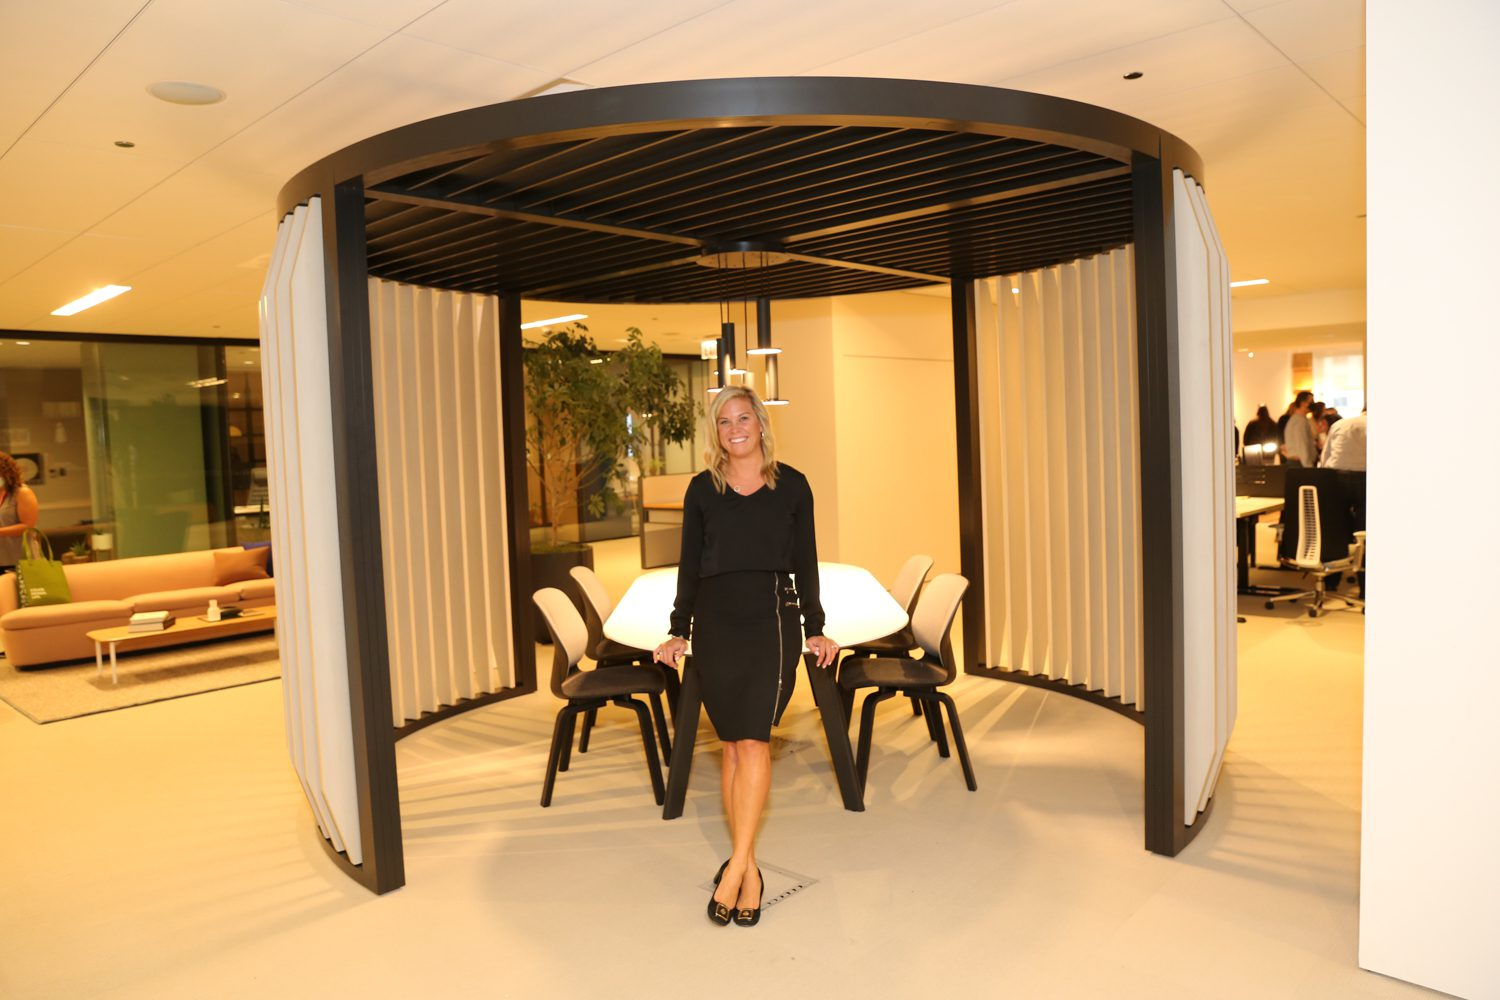 Jenna Ter Horst, field marketing and events manager at Haworth in the Pergola designed by Patricia Urquiola and Haworth Design Studio.